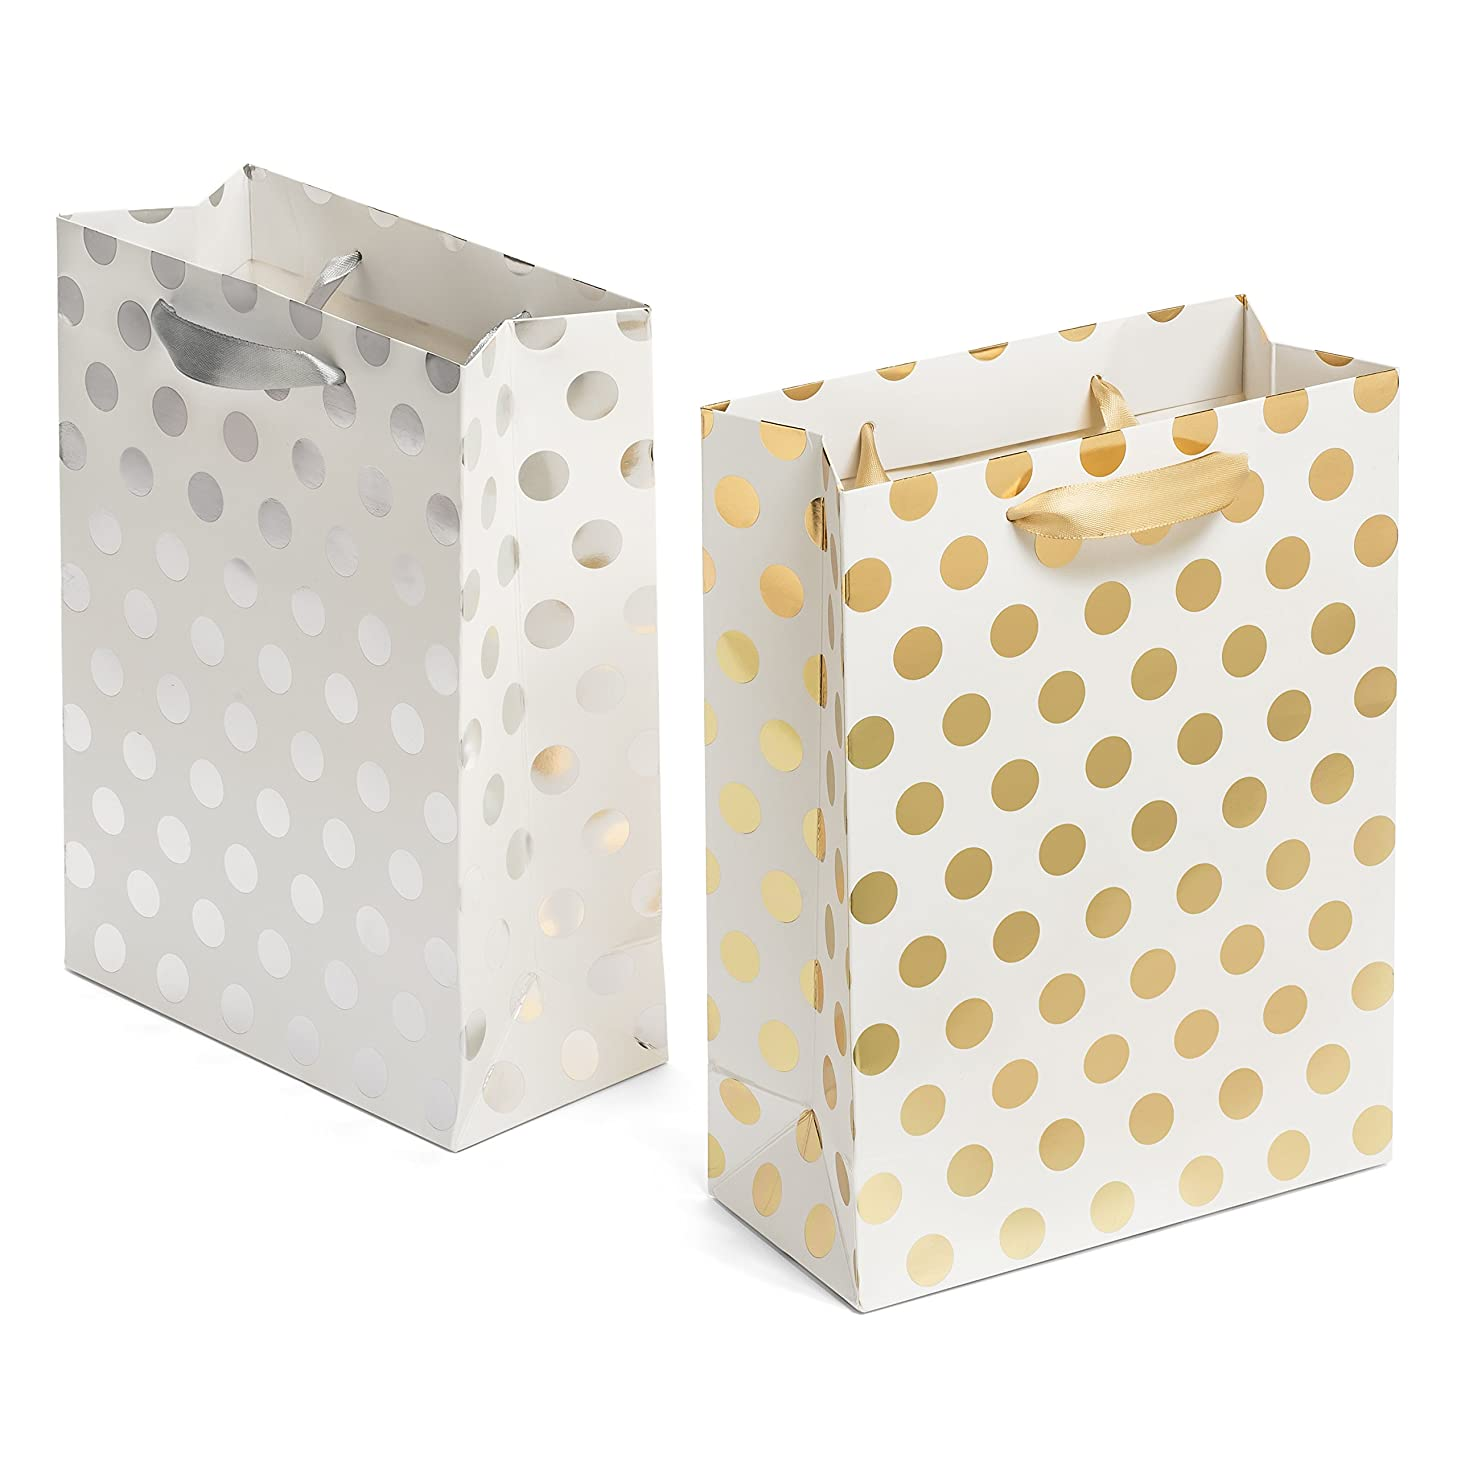 Haute Soiree - 12 Pack - Medium Sized Gift Bags Set with Ribbon Handles - 6 Gold and 6 Silver Polka Dot Bags Perfect for Weddings, Birthday and Holiday Presents